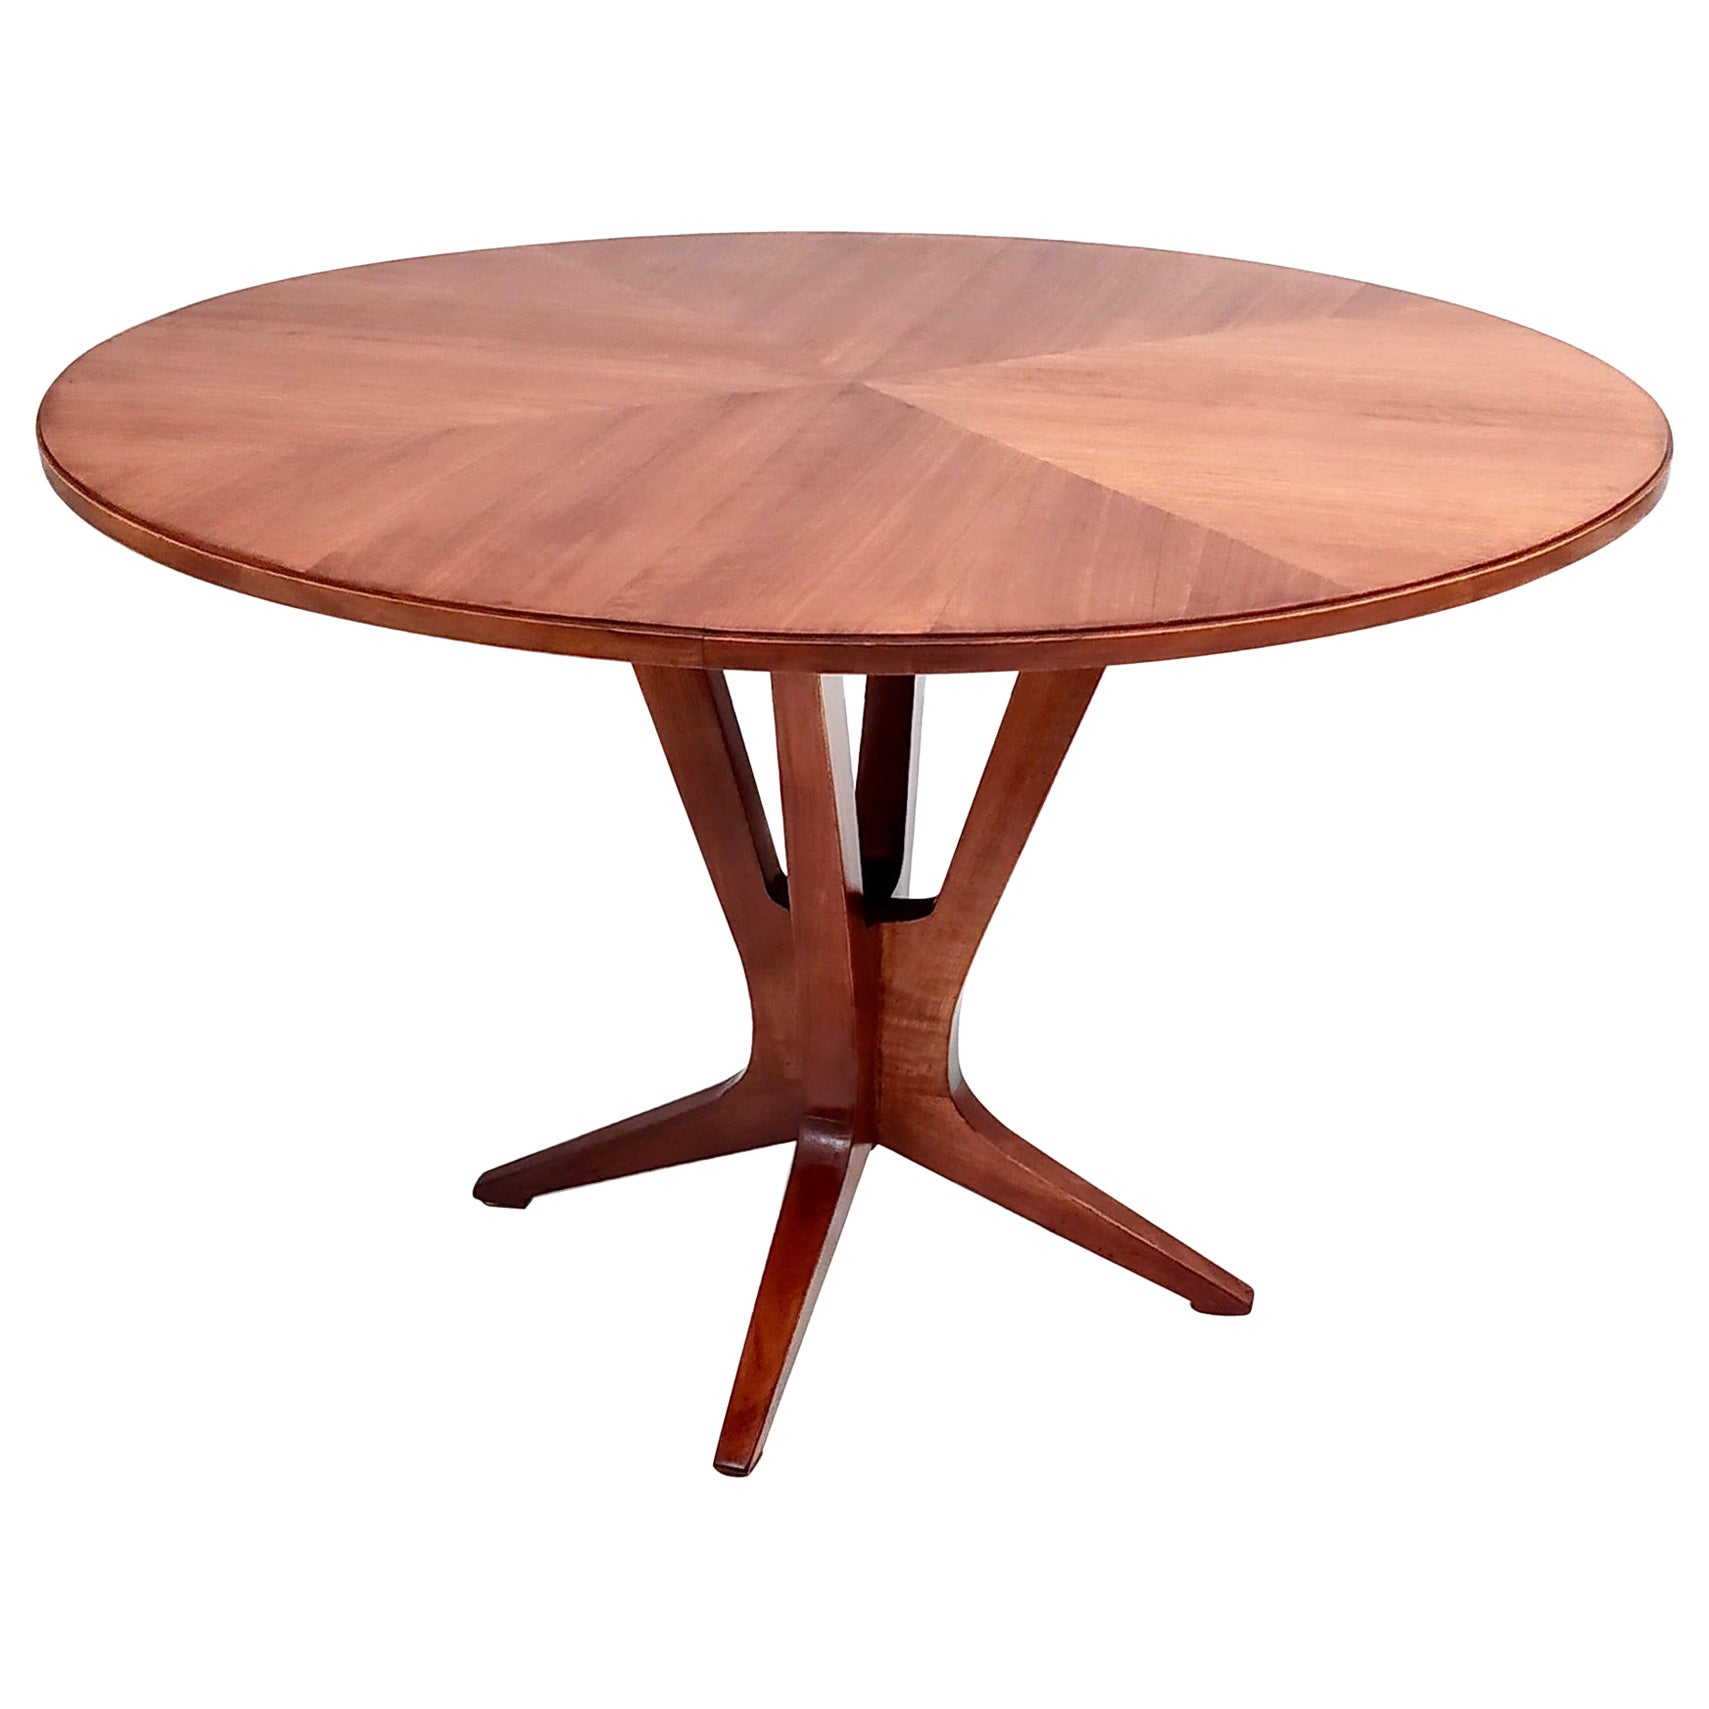 Midcentury Round Wooden Dining Table in the Style of Ico Parisi, Italy